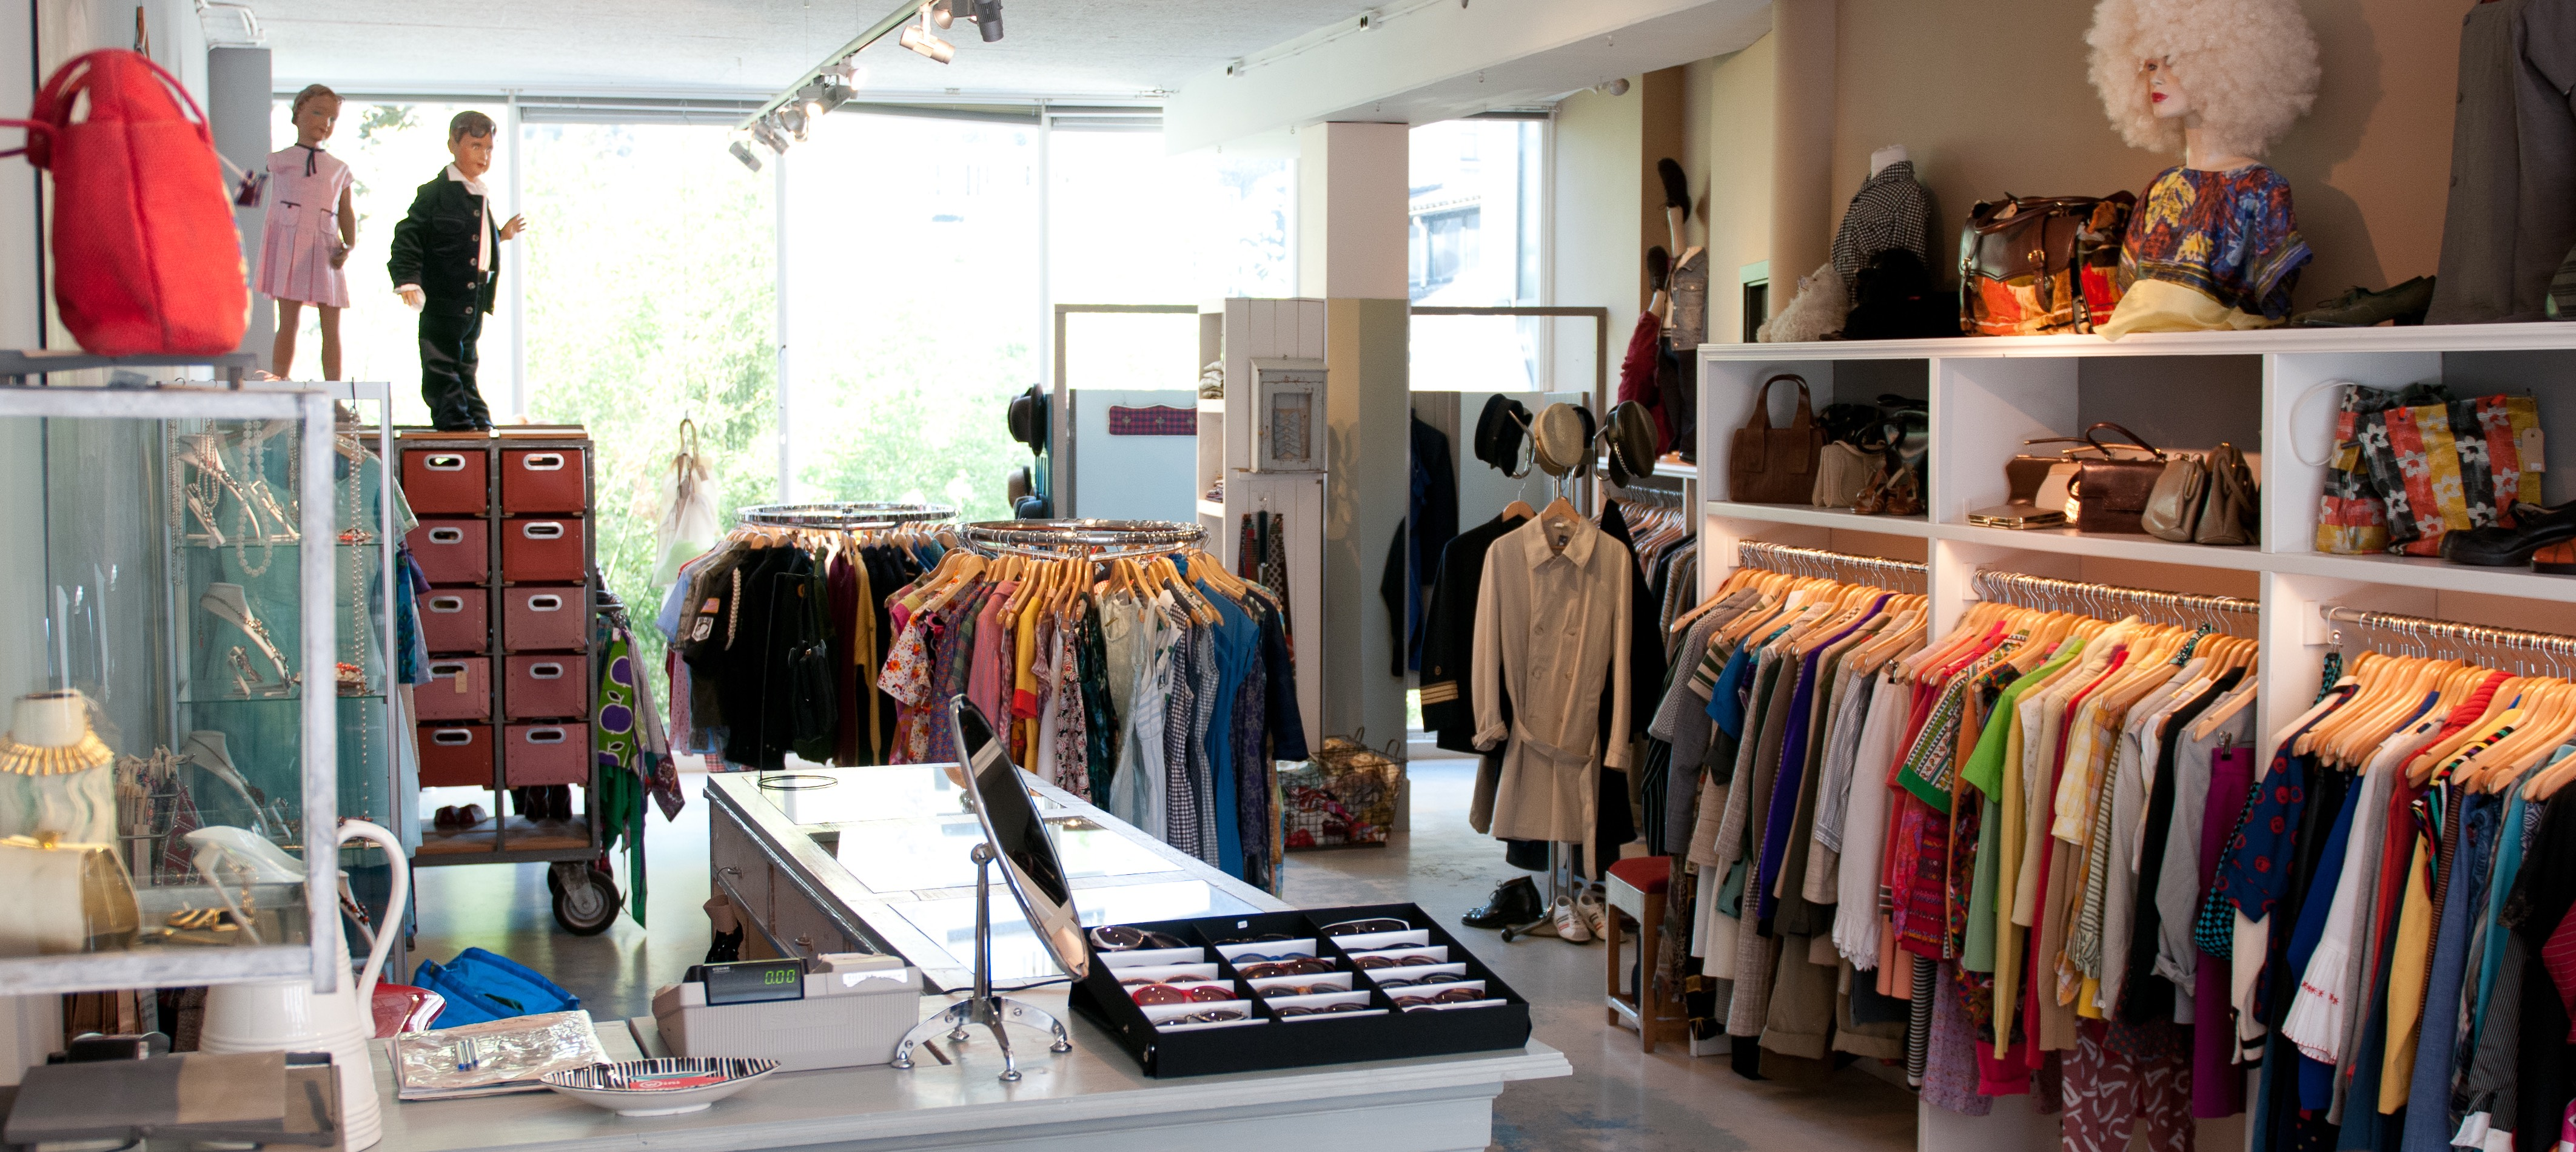 East End Thrift Stores And Styling Advice